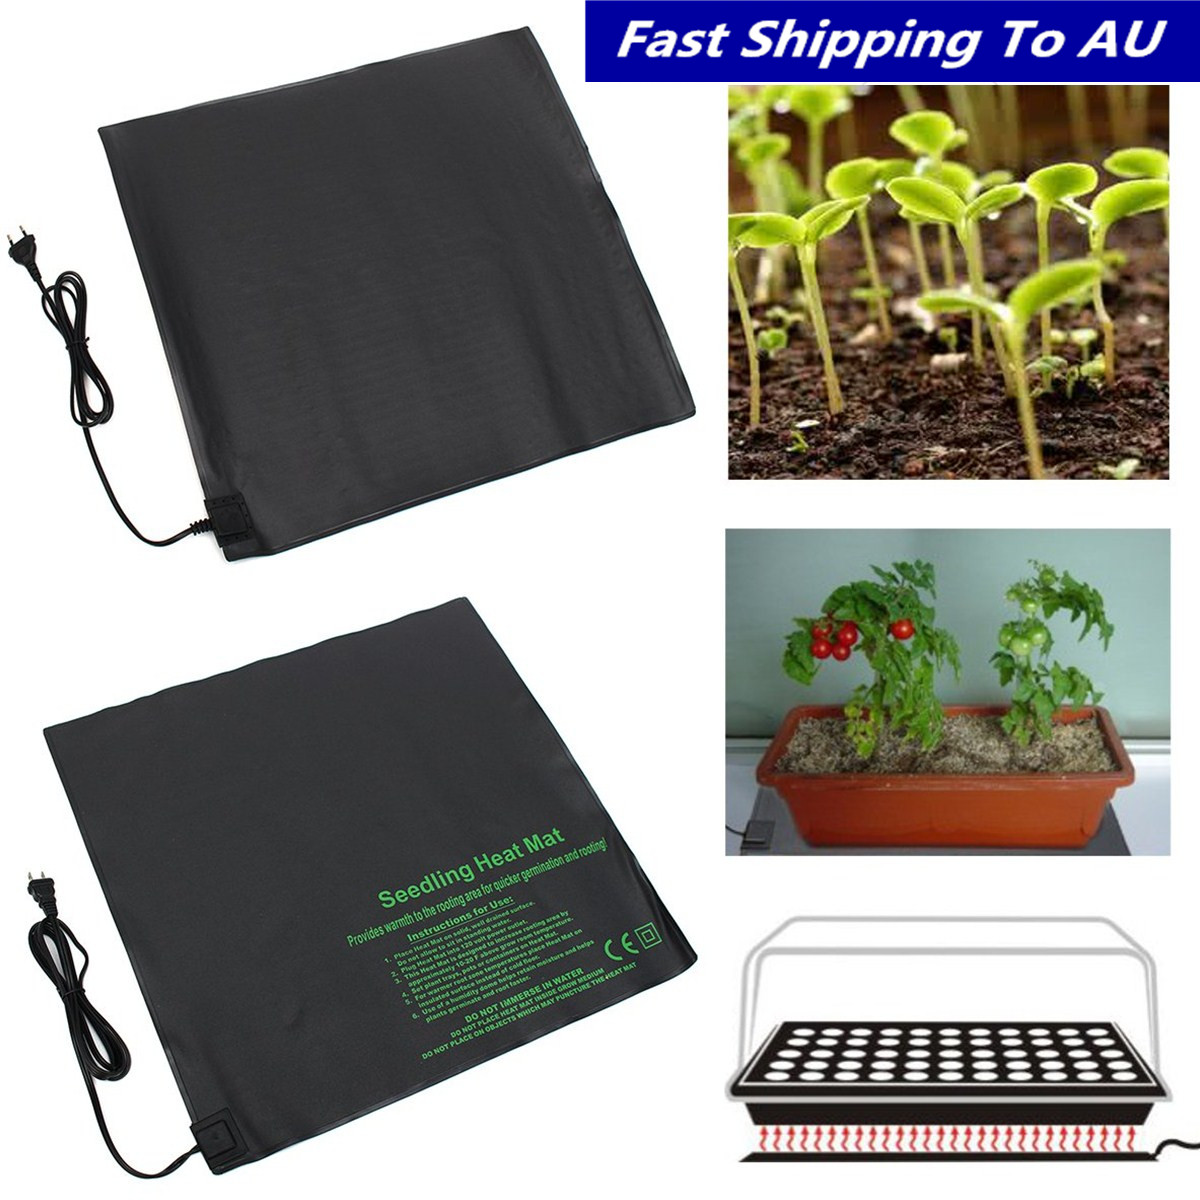 52x52cm Seedling Heating Mat Waterproof Plant Seed Germination Propagation Clone Starter Pad Garden Supplies EU USPlug 110V 220V